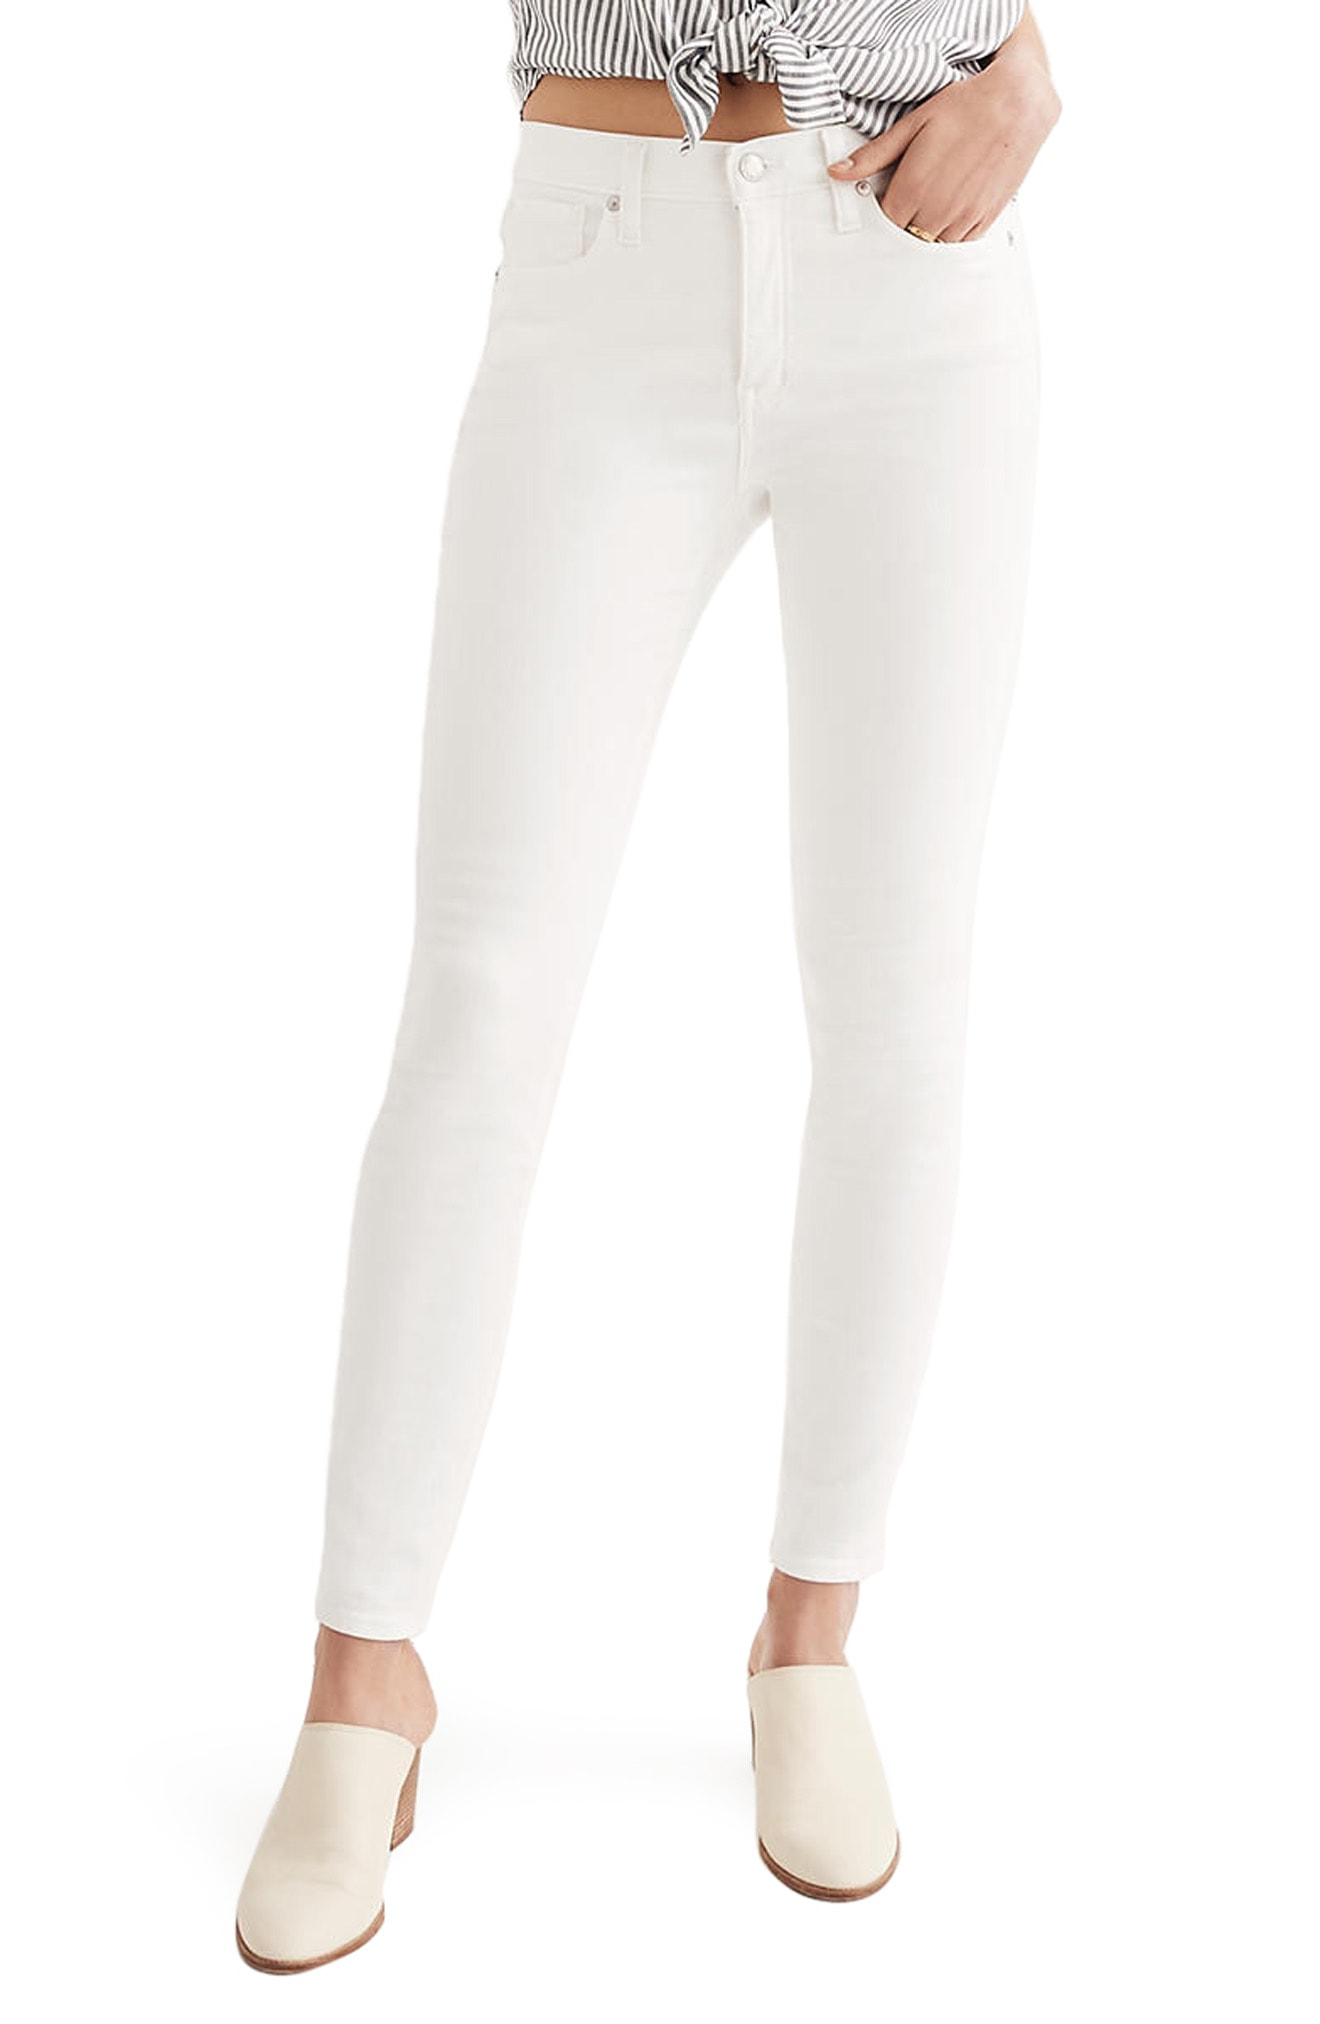 Make your unique style by   wearing white skinny jeans